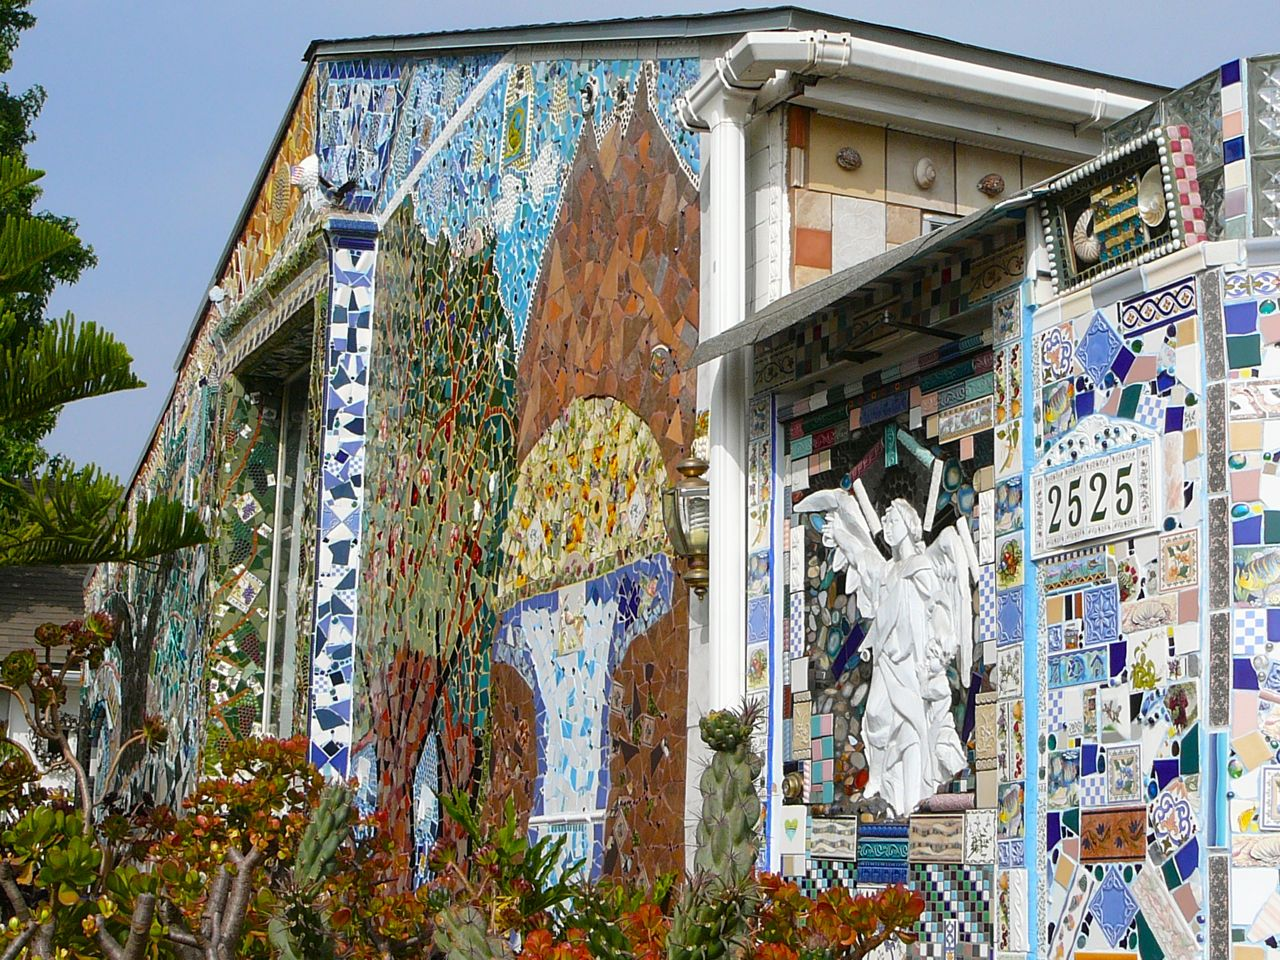 Mosaic House Public Building In Los Angeles Thousand